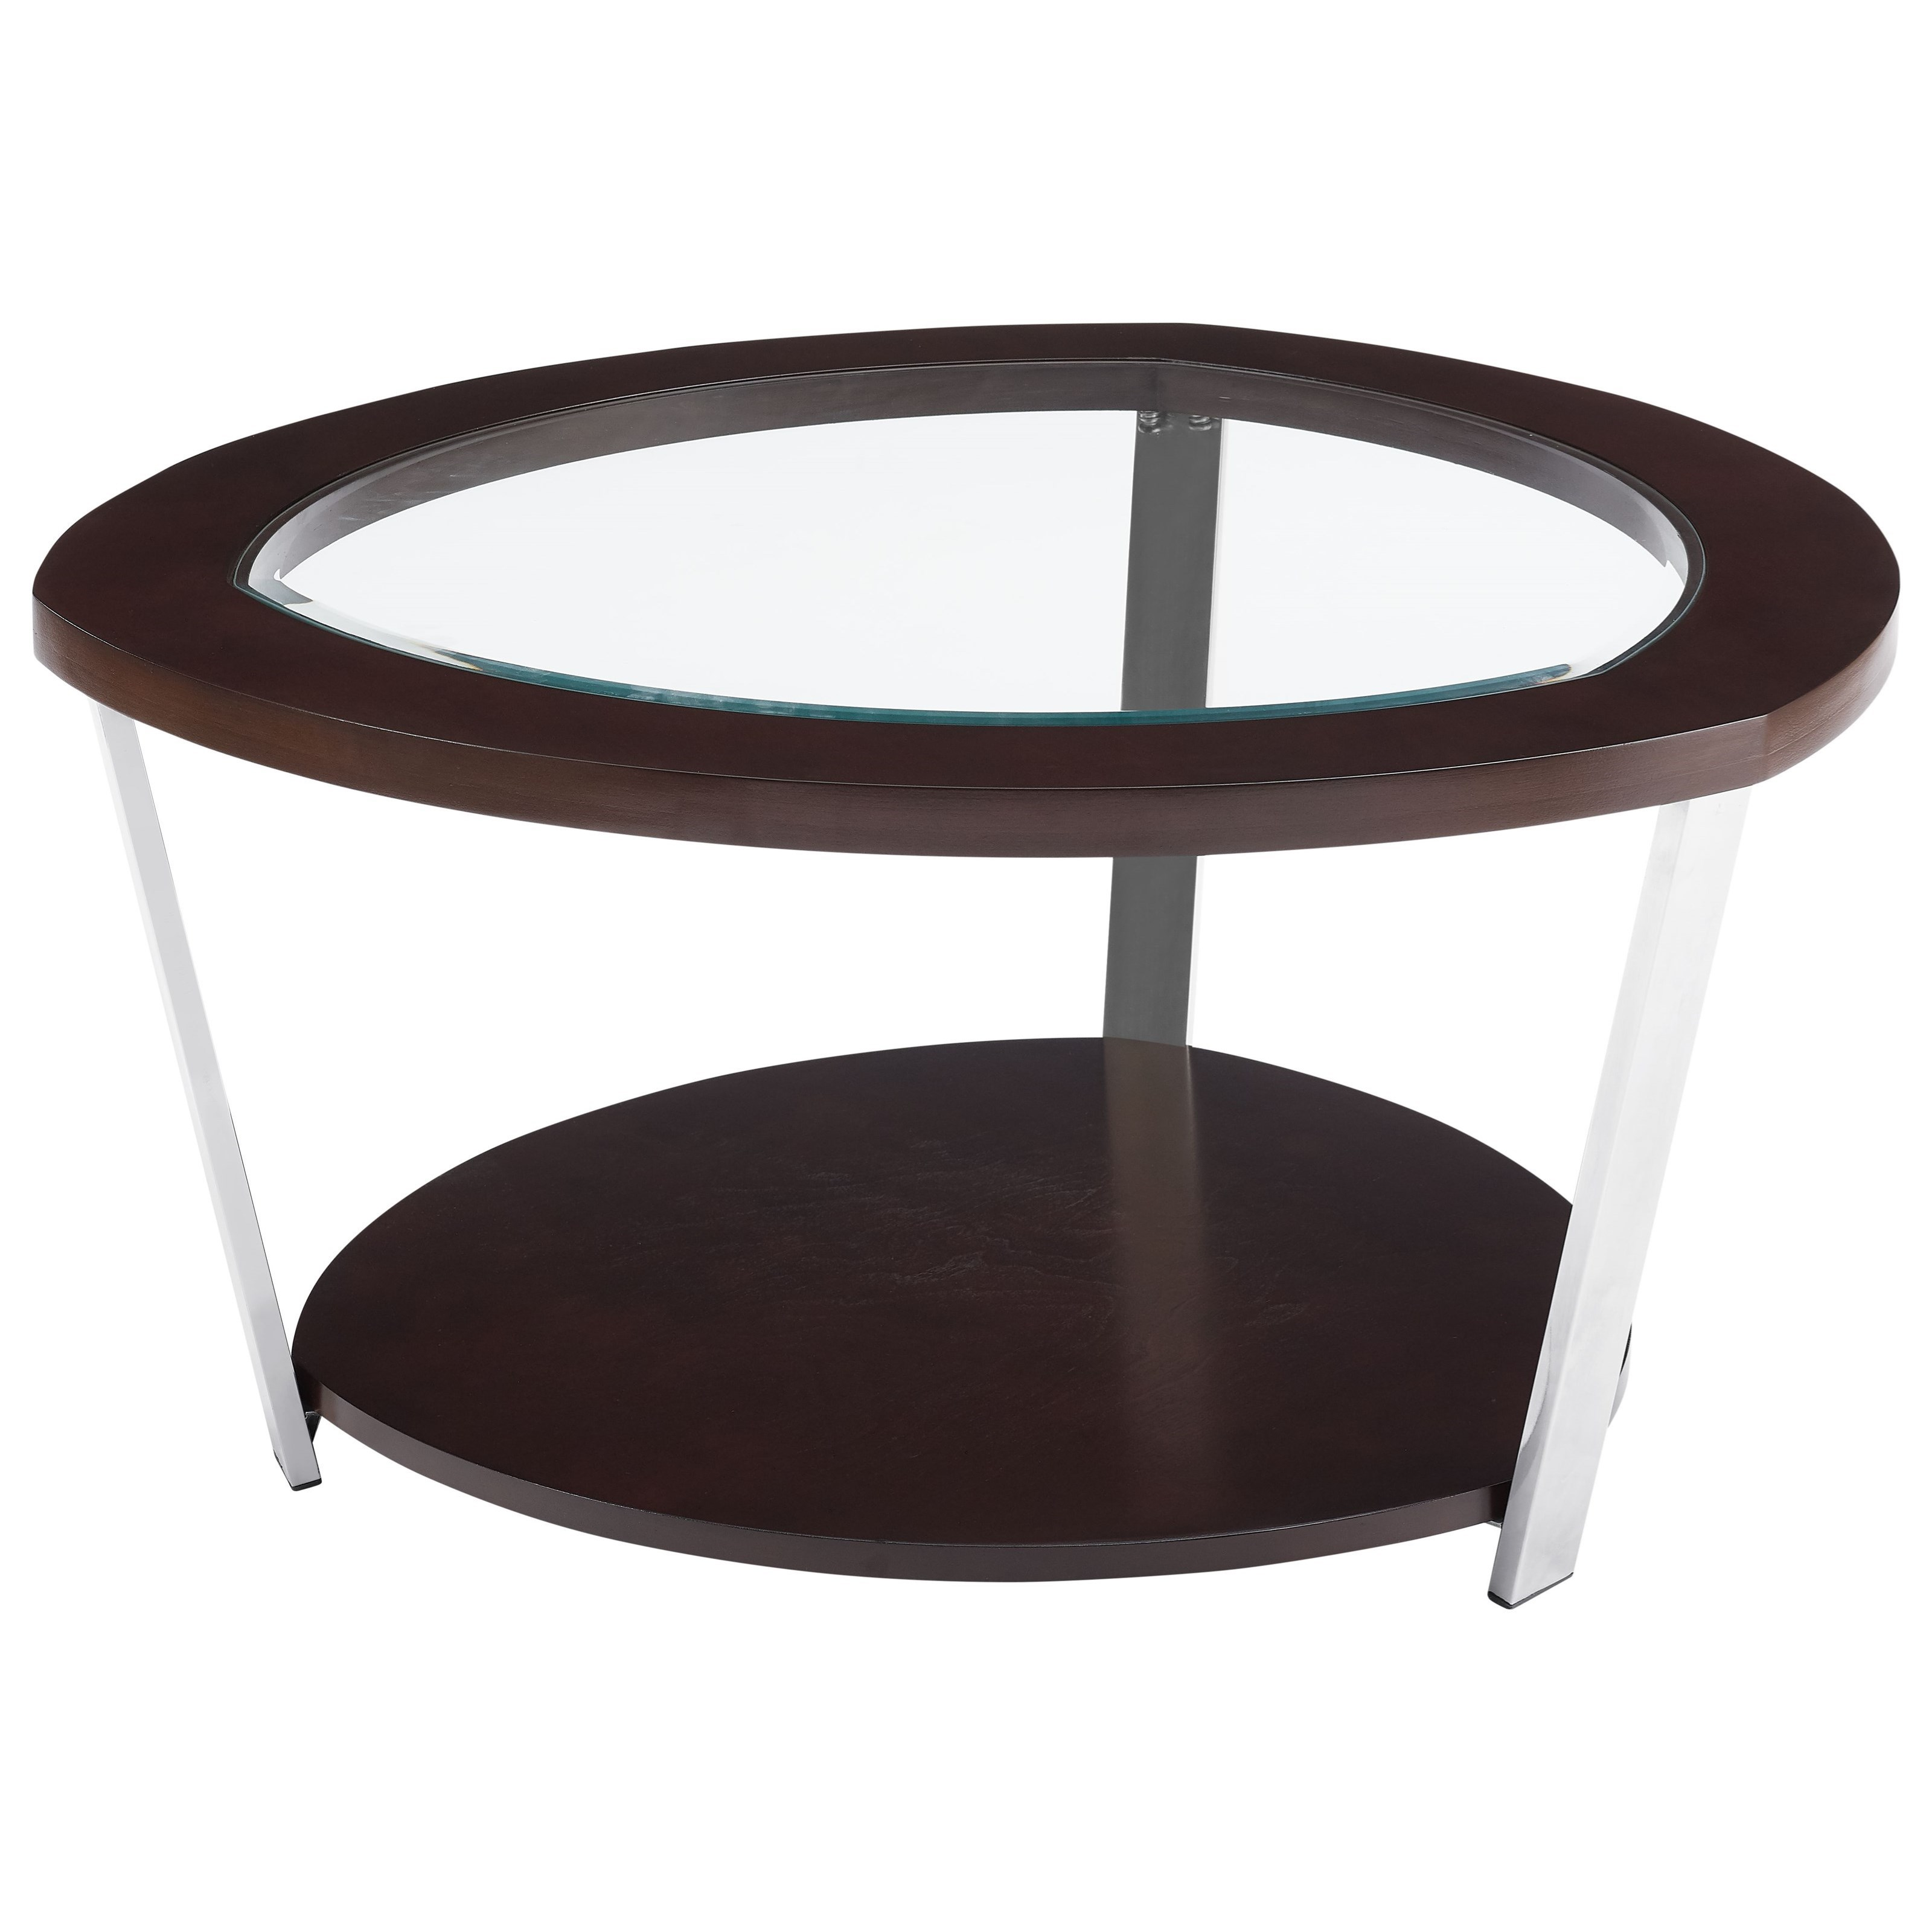 Duncan Cocktail Table by Steve Silver at Northeast Factory Direct